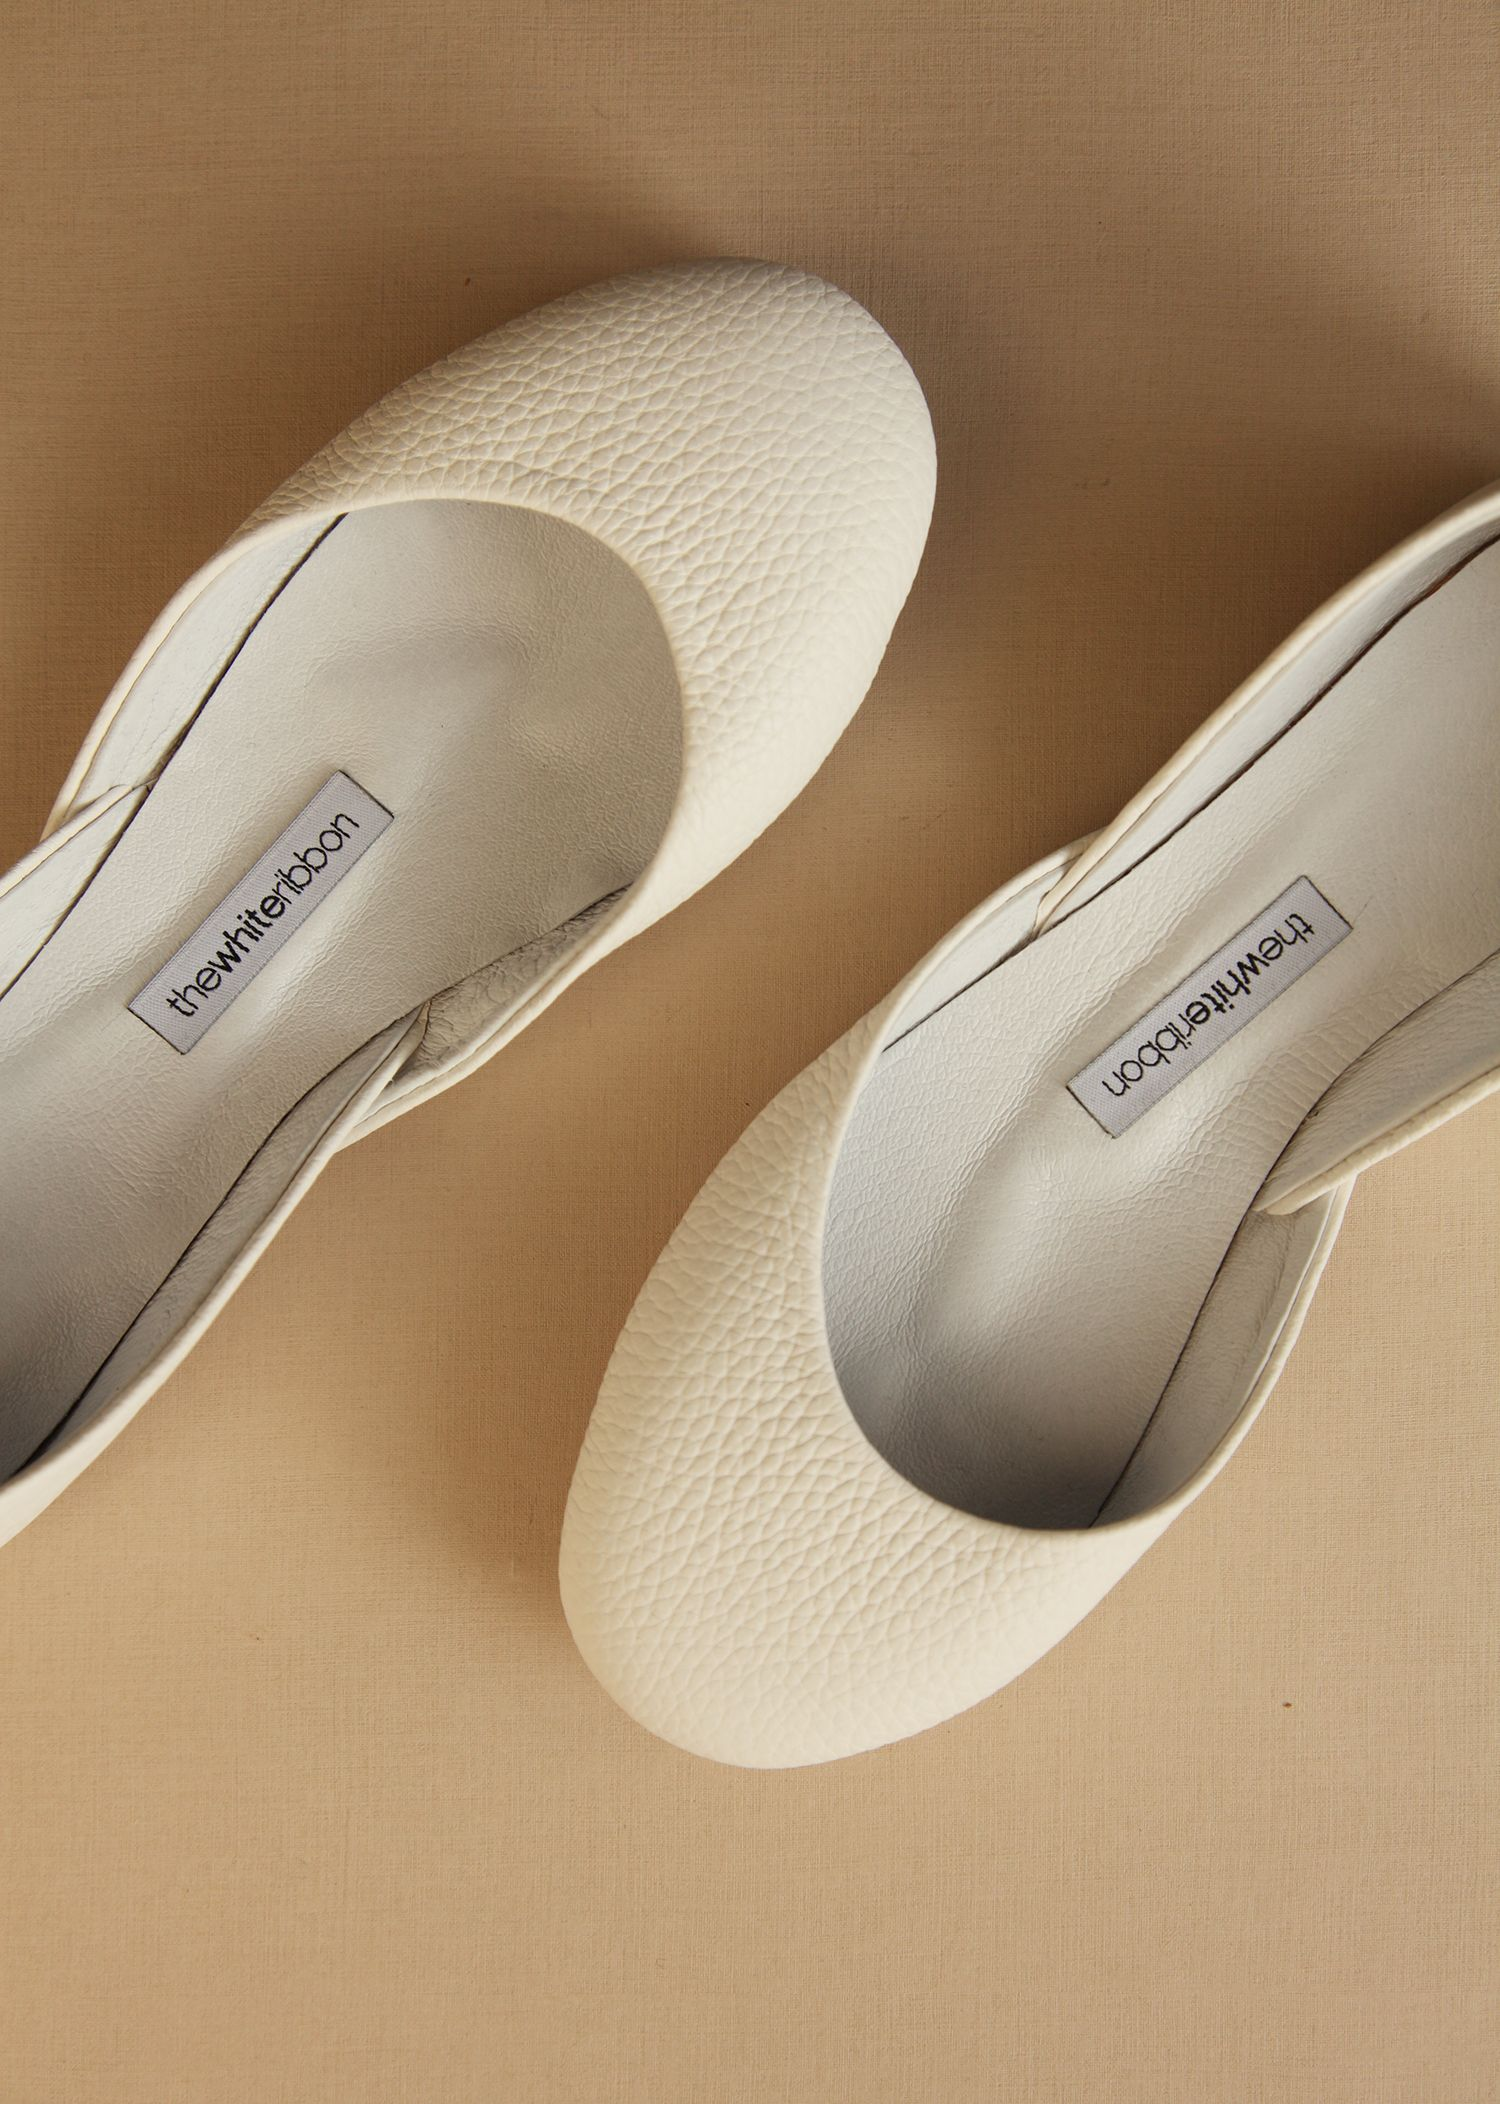 4b50e78b1e3 Handmade from ethically sourced leather, these minimal ivory ...